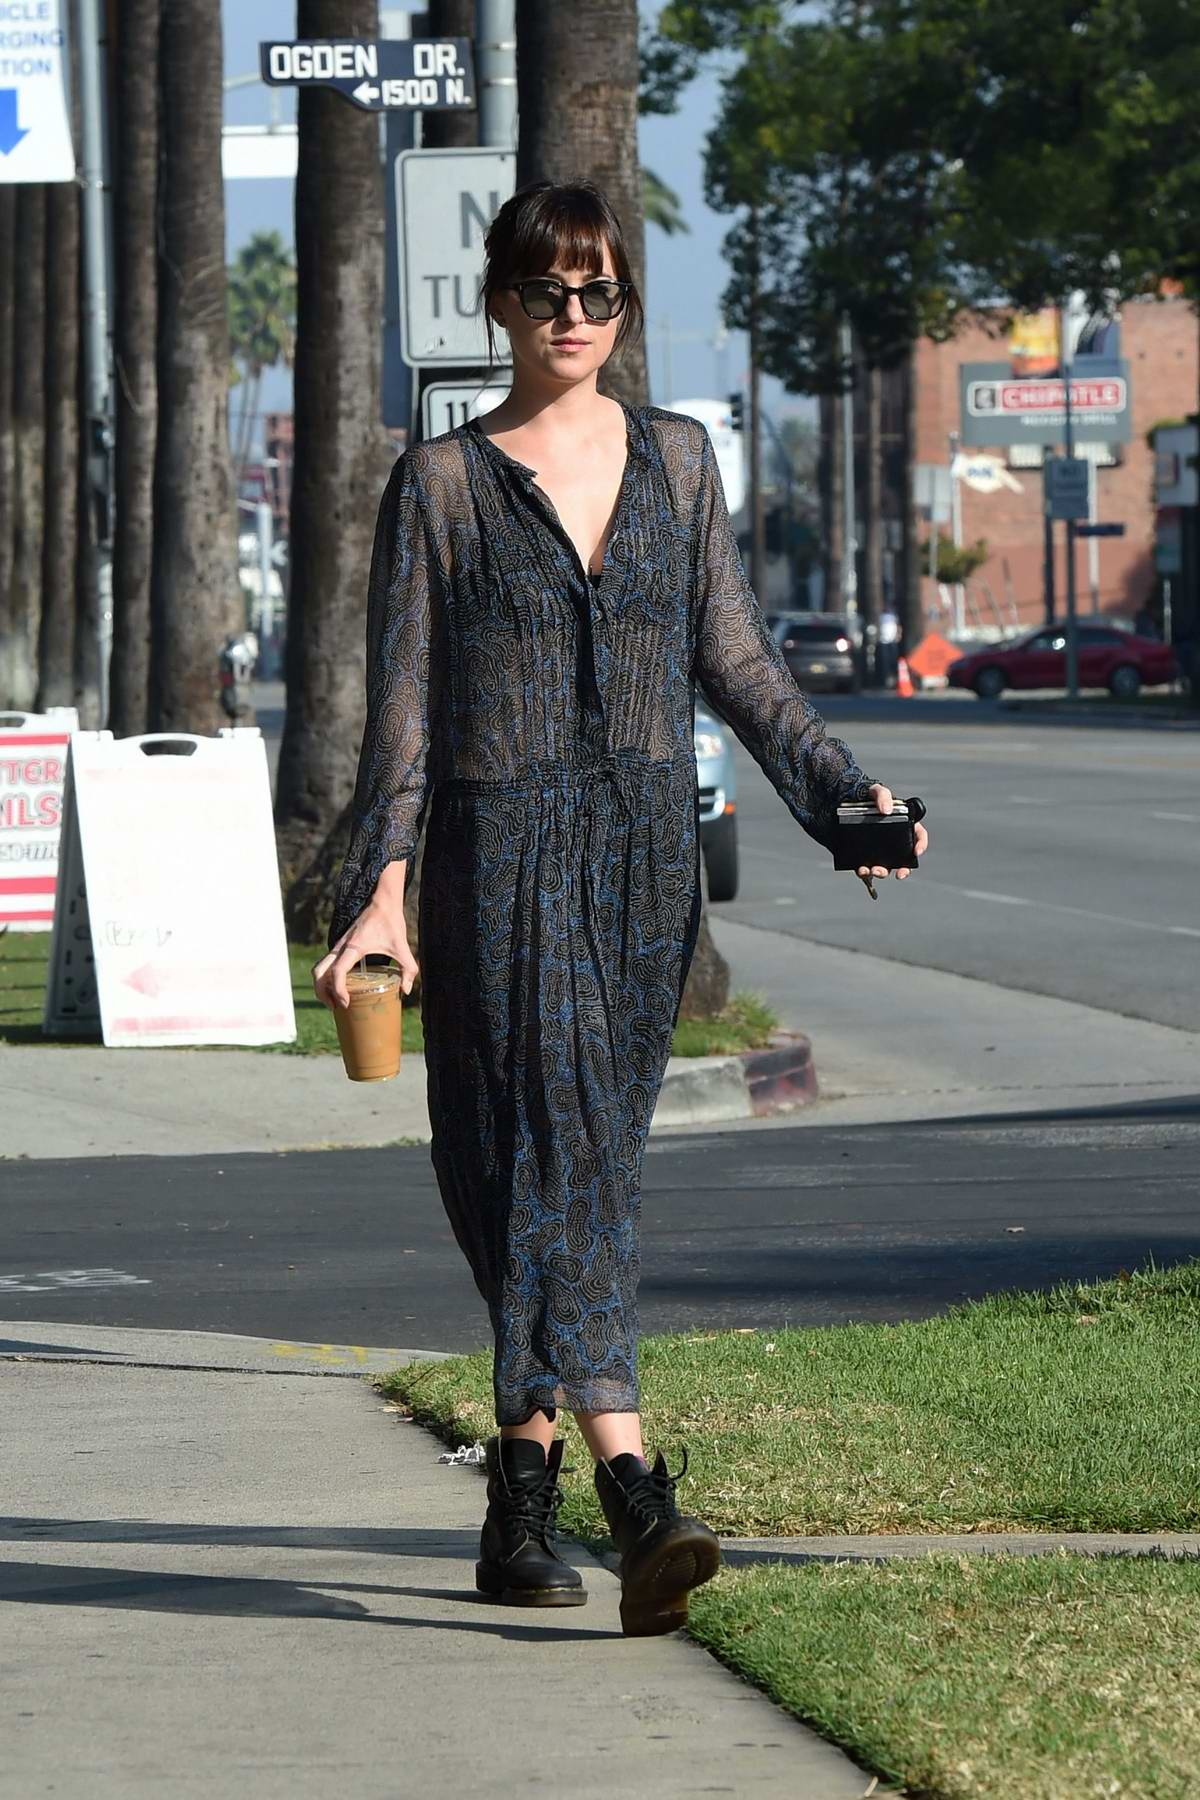 Dakota Johnson seen wearing a sheer black dress as she grabs an iced coffee while running errands in Hollywood, Los Angeles